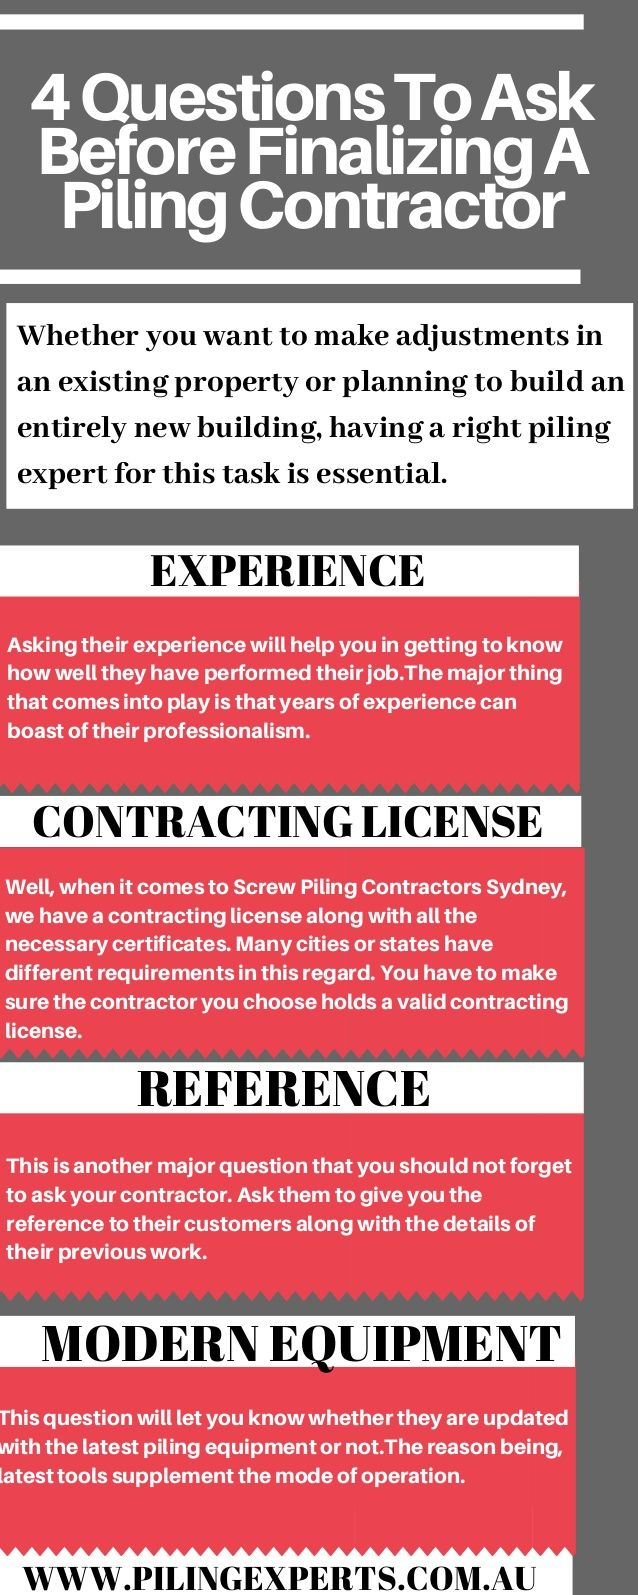 Choosing piling contractors, you need to ask few questions to ensure